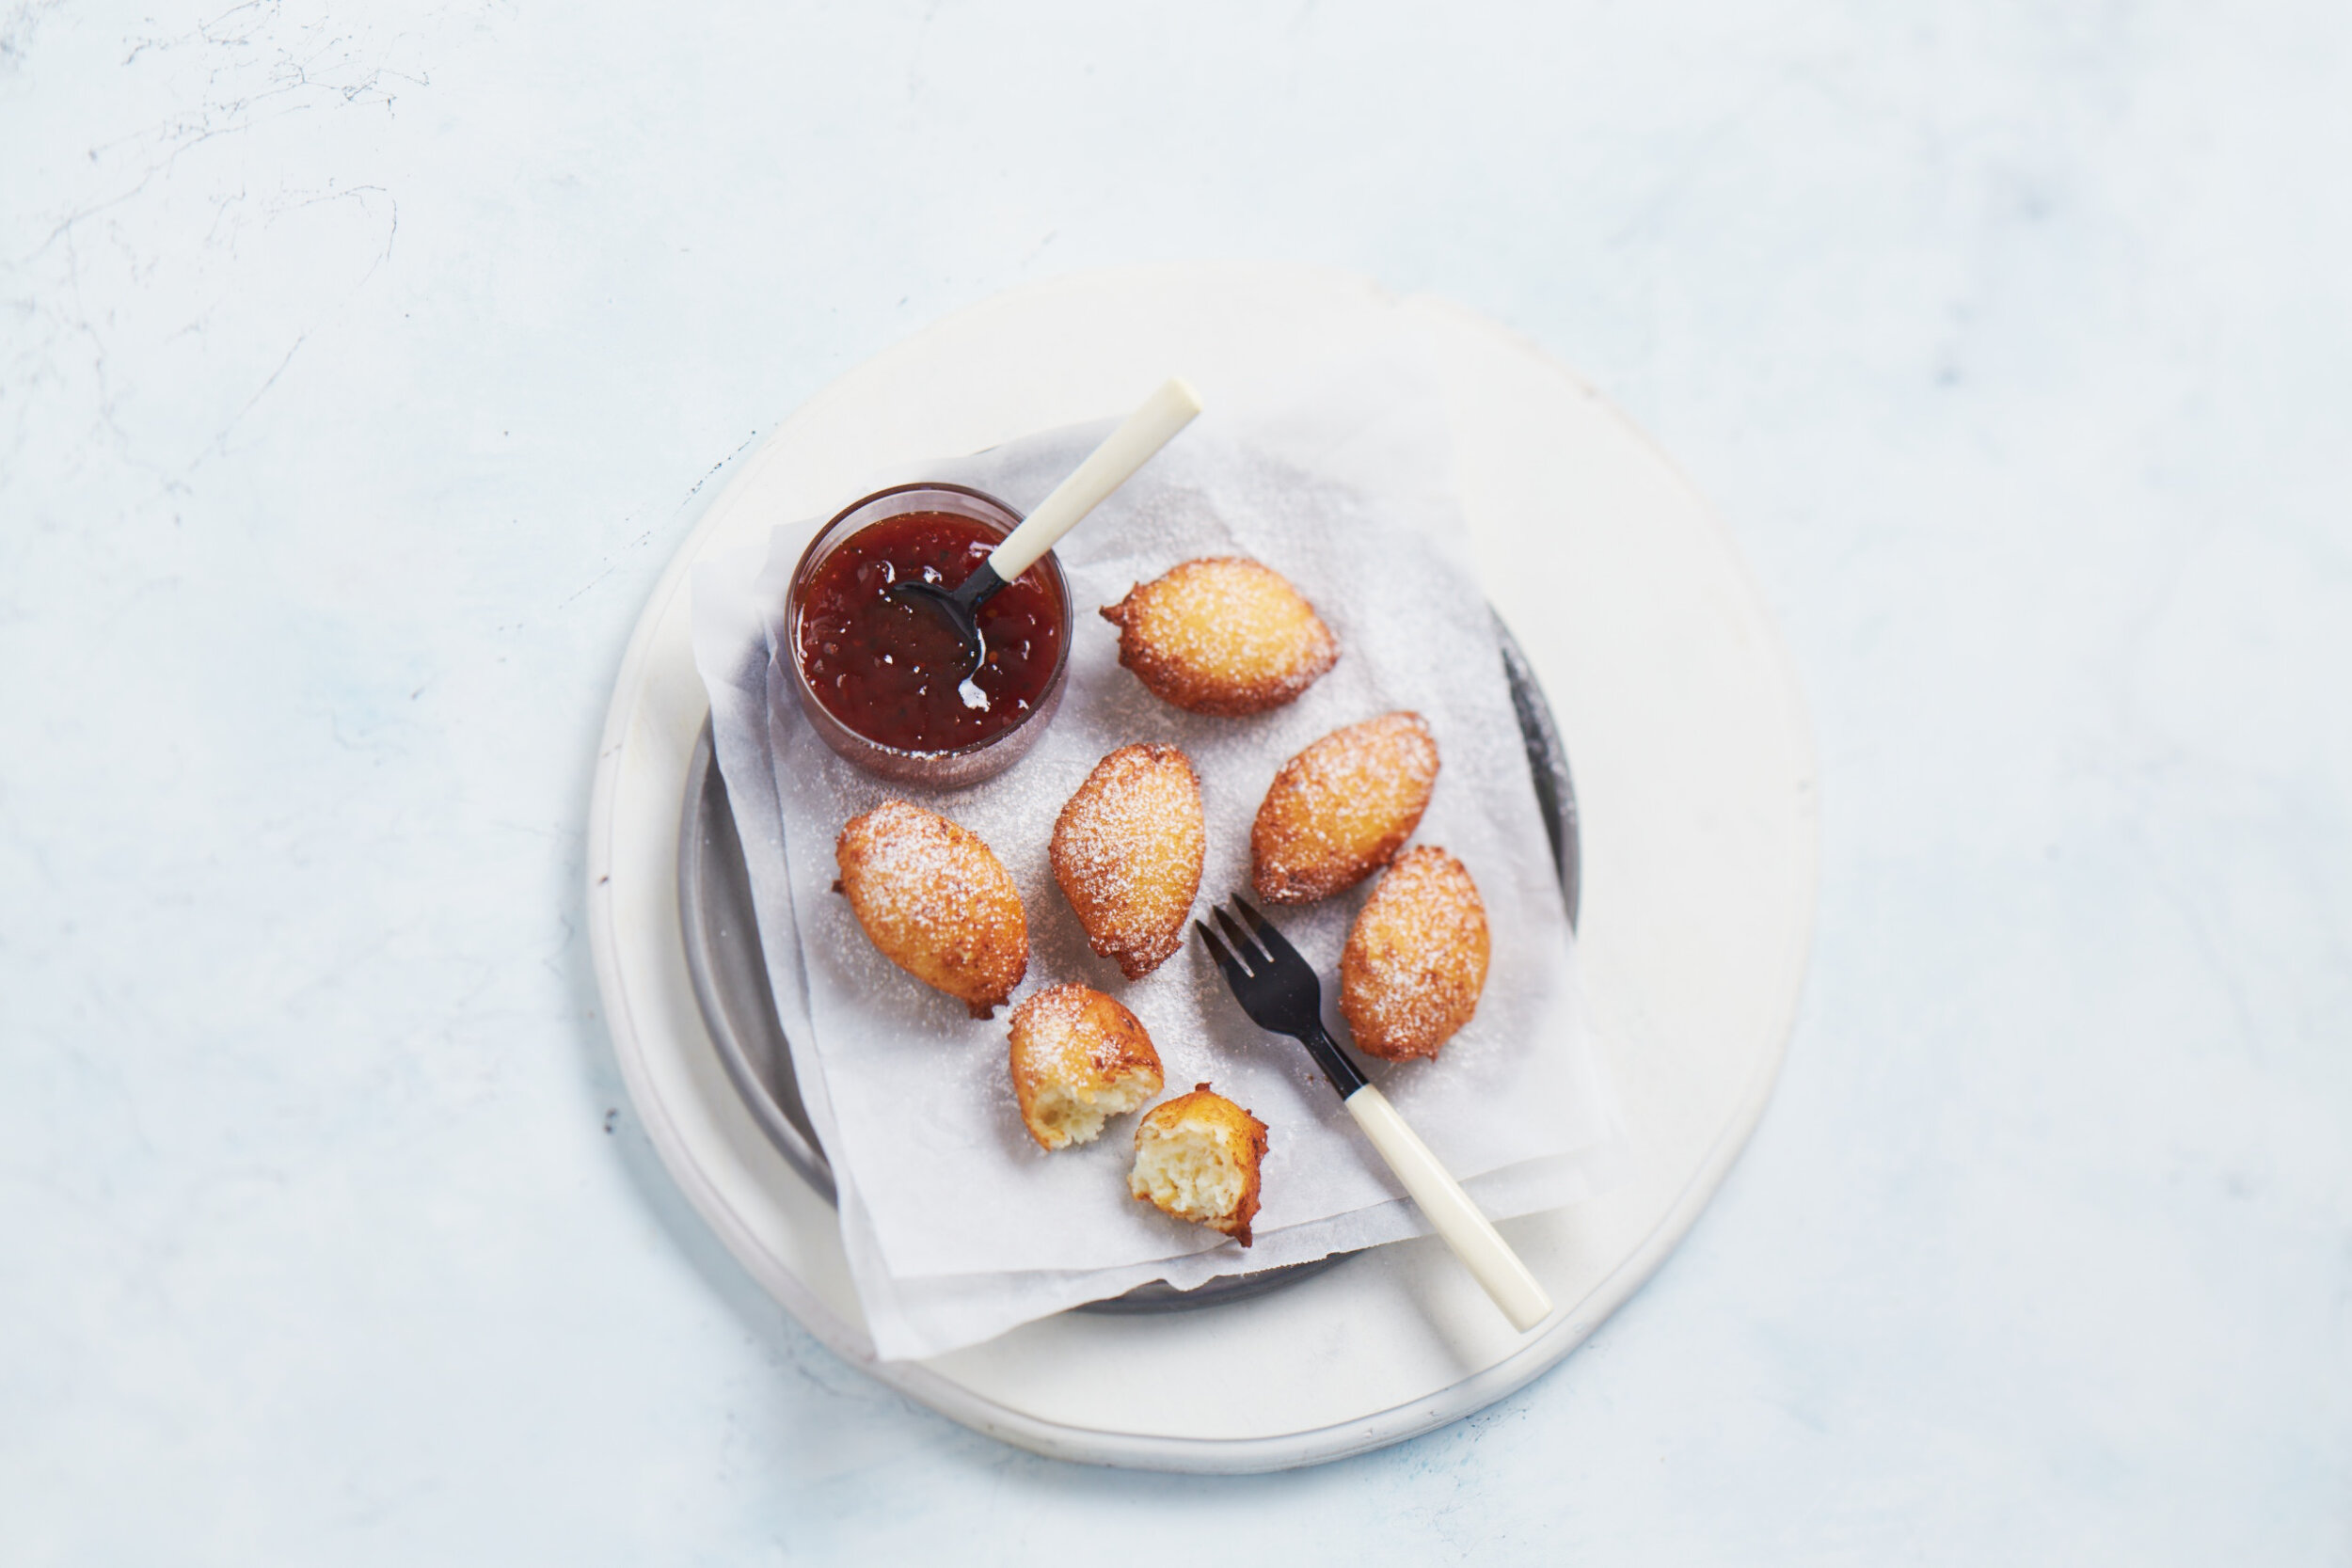 Croquettes with jam_0070.jpg